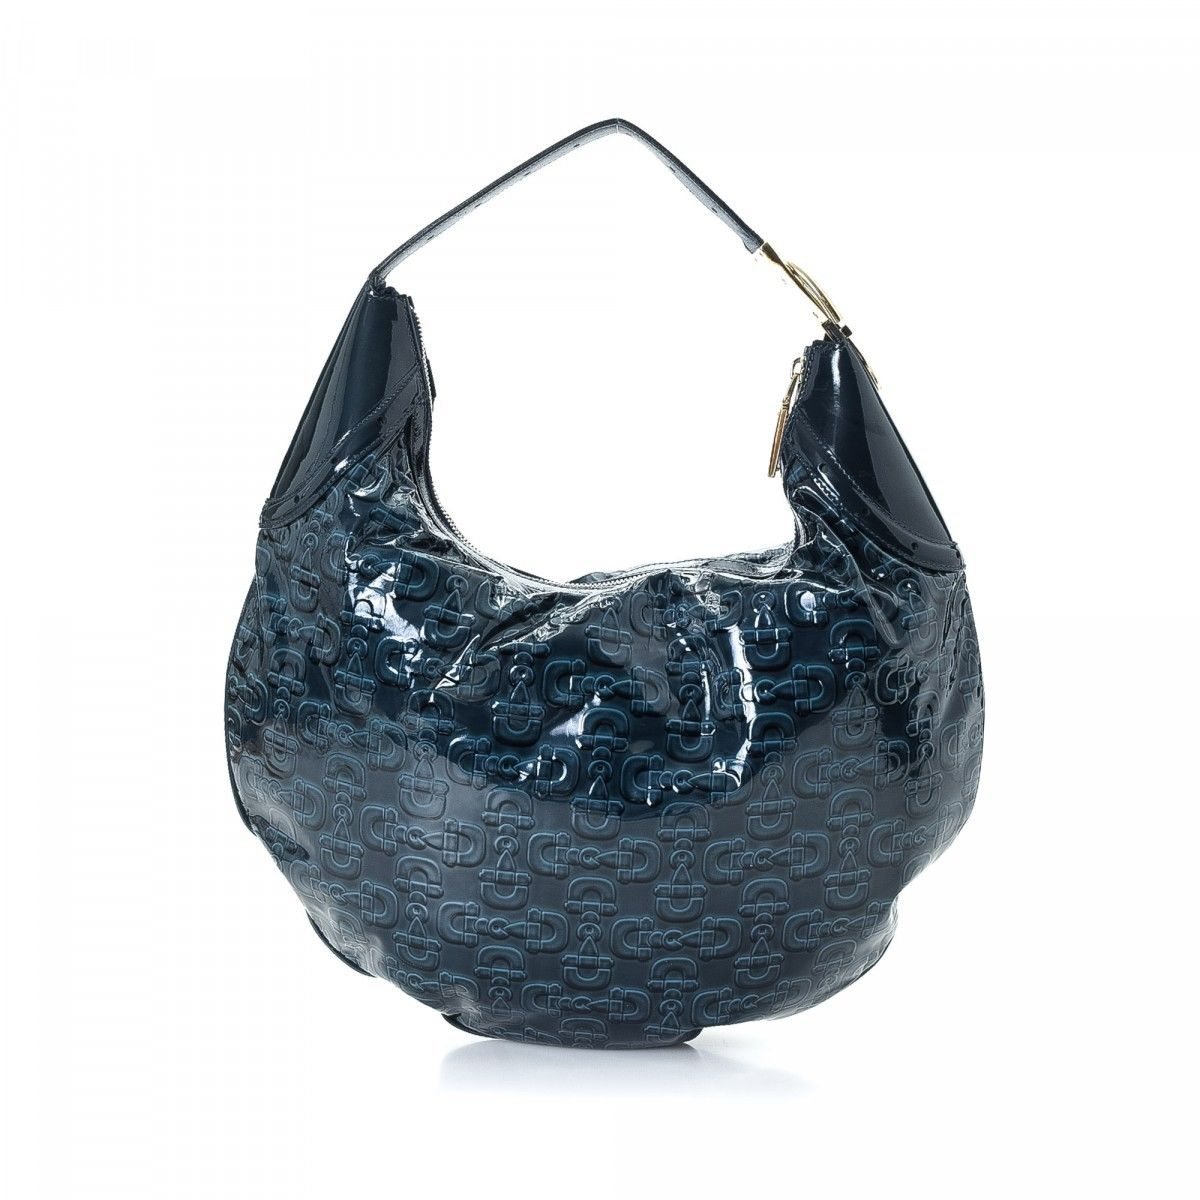 3fc19a516f59 Gucci Hobo Bag Patent leather - LXRandCo - Pre-Owned Luxury Vintage